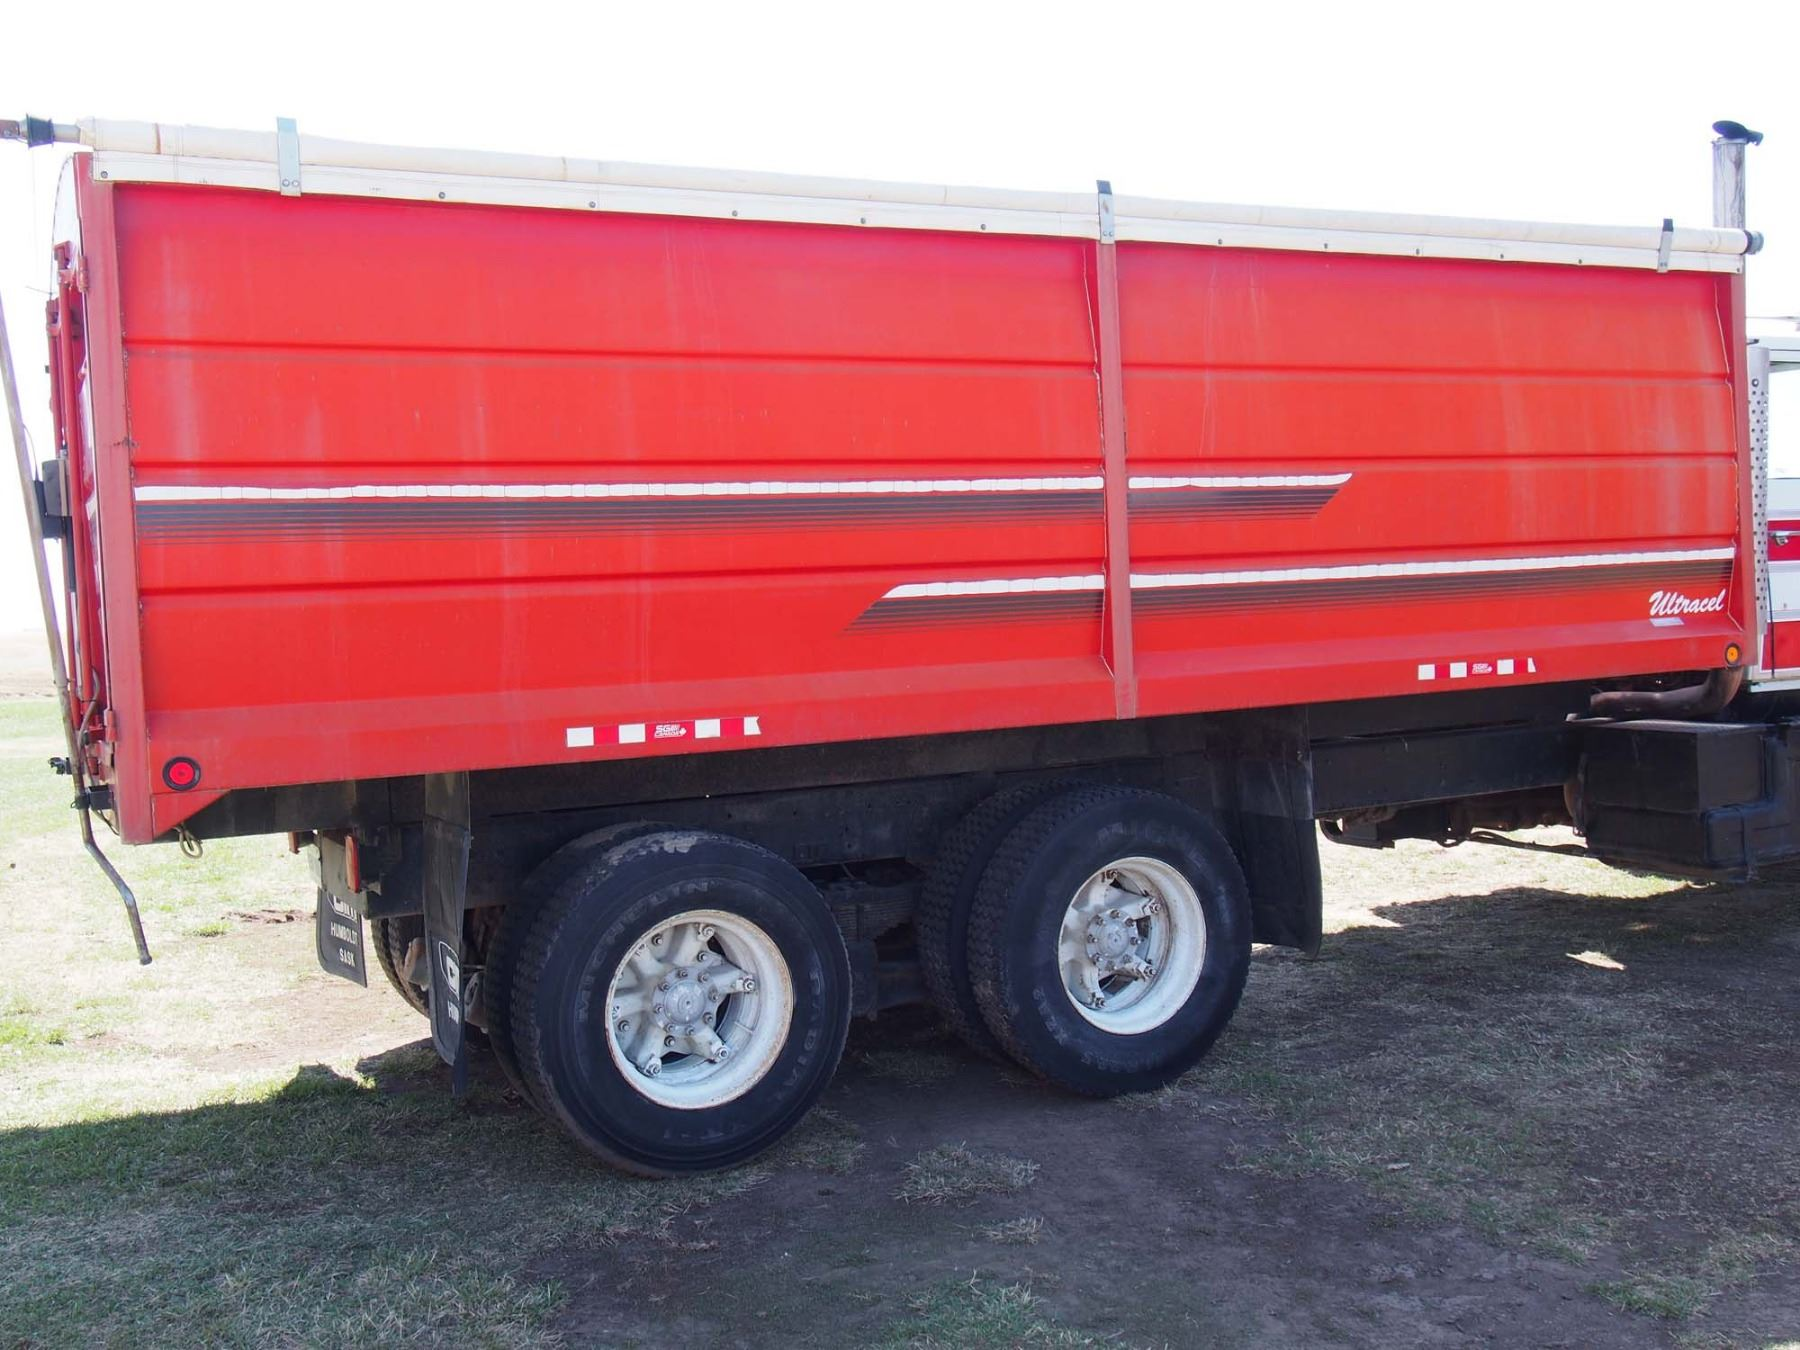 medium resolution of  image 4 1988 ford l9000 tandem truck 855 cummings engine 20 box and